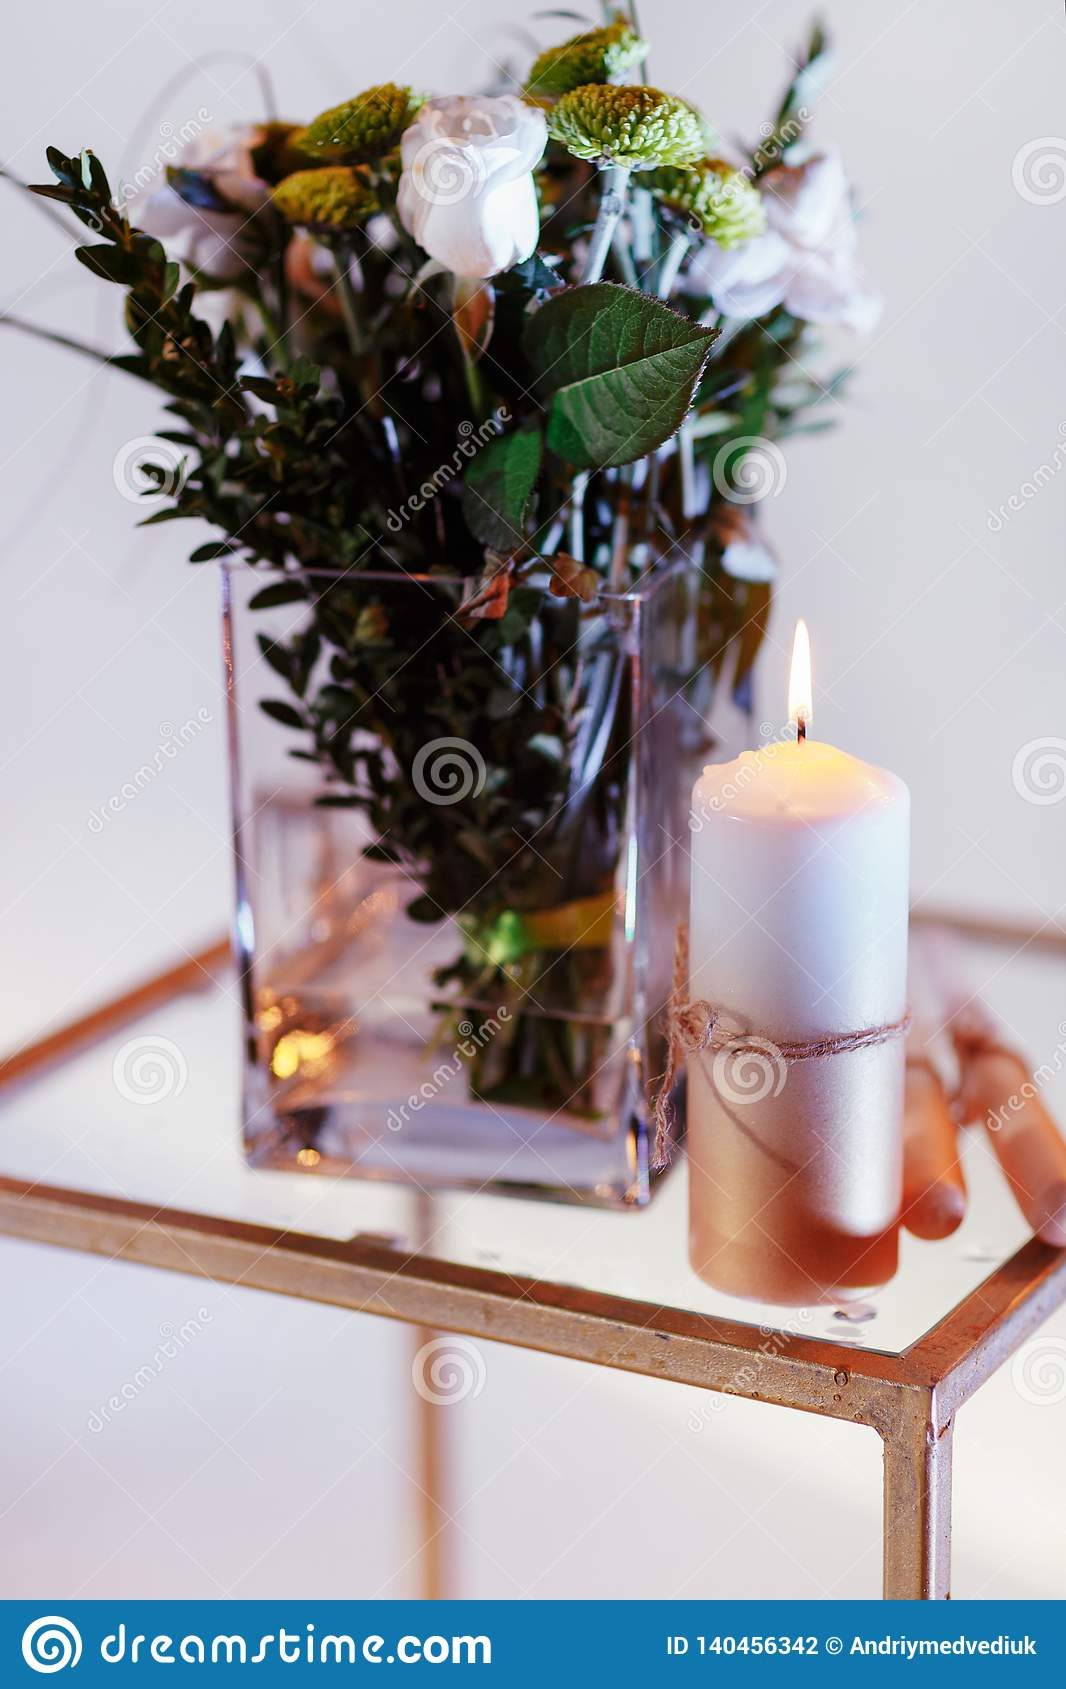 Bouquet of flowers in a vase, candles on a tray, vintage home decor on an a table